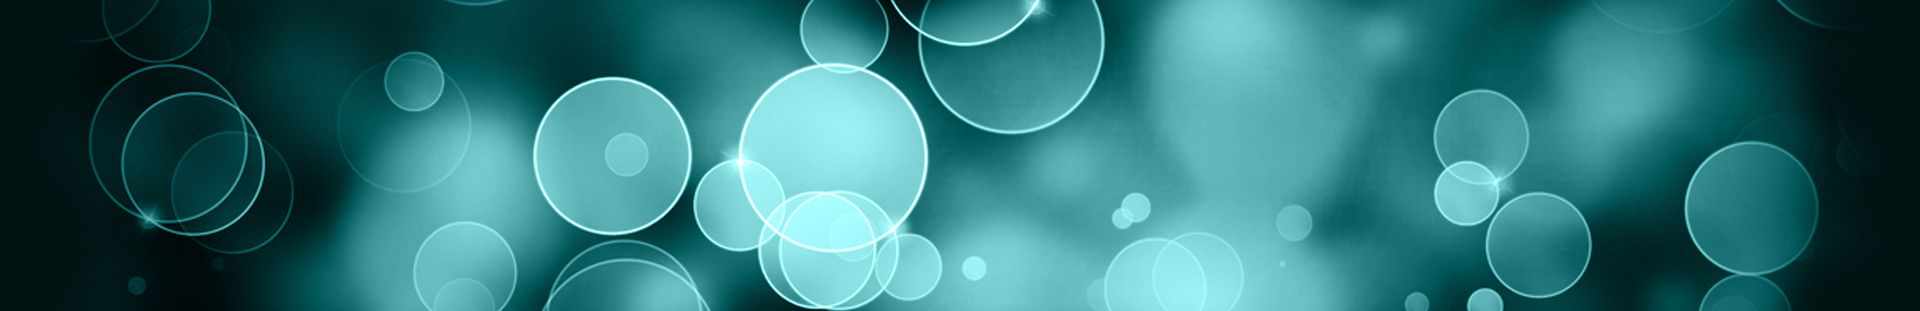 abstract banner-bubbles